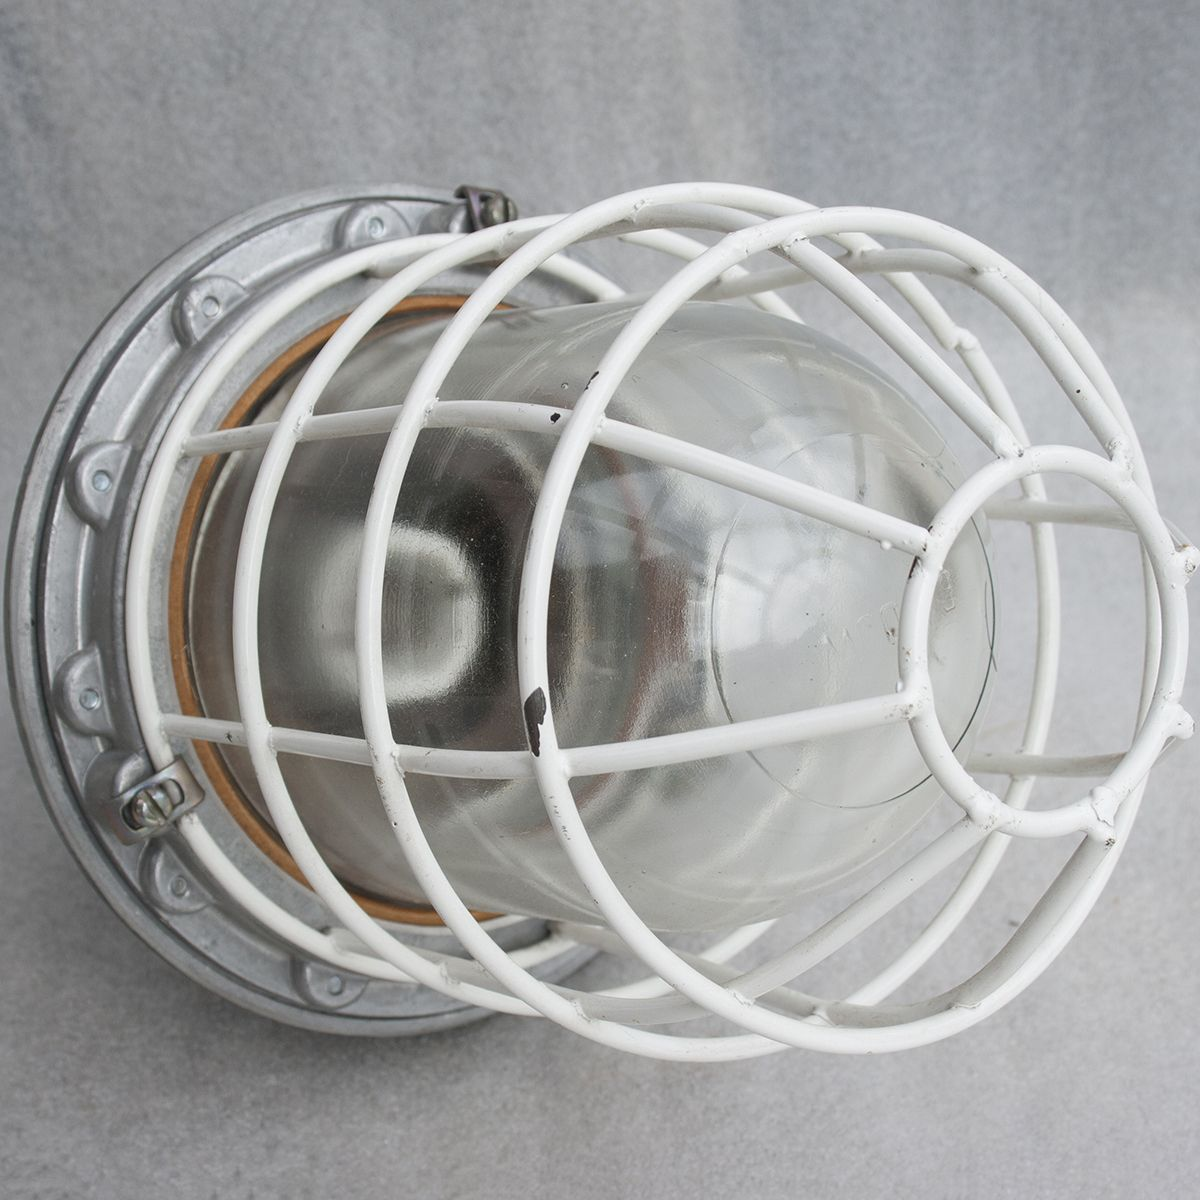 Explosion Proof Lamp Industrial Light Bull Eye Lamp With Images